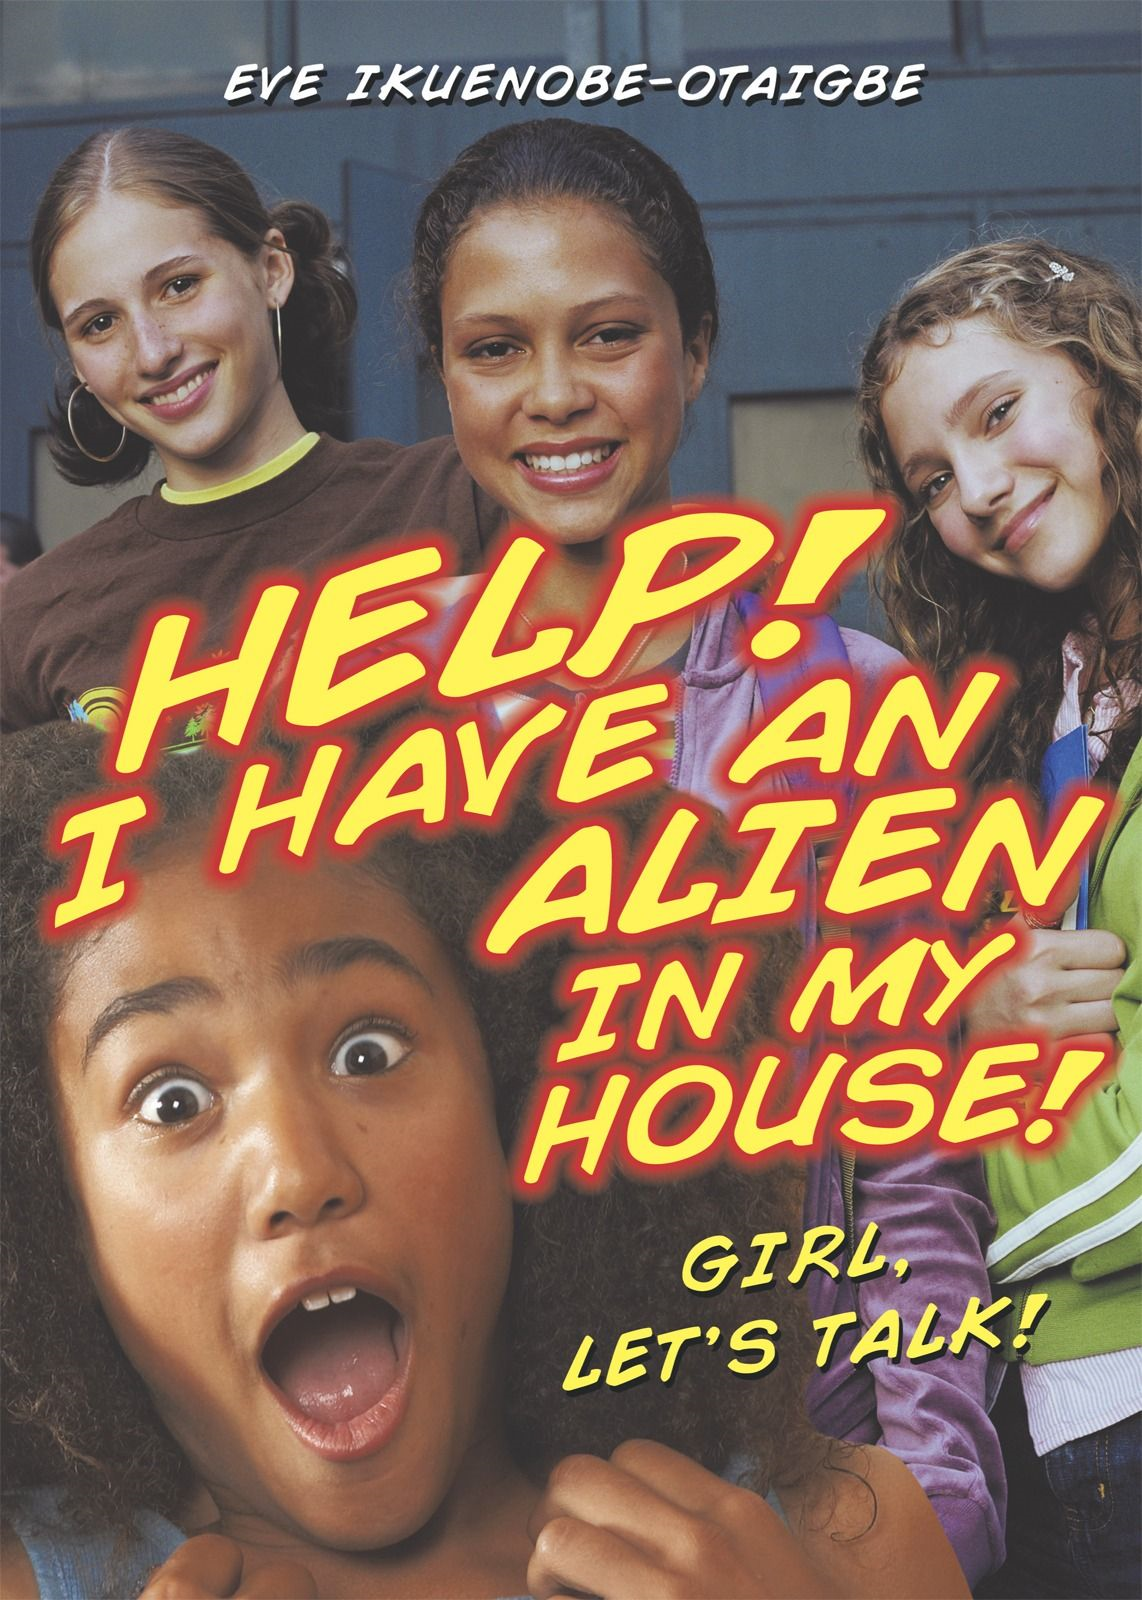 Help! I Have An Alien In My House! By: Eve Ikuenobe-Otaigbe